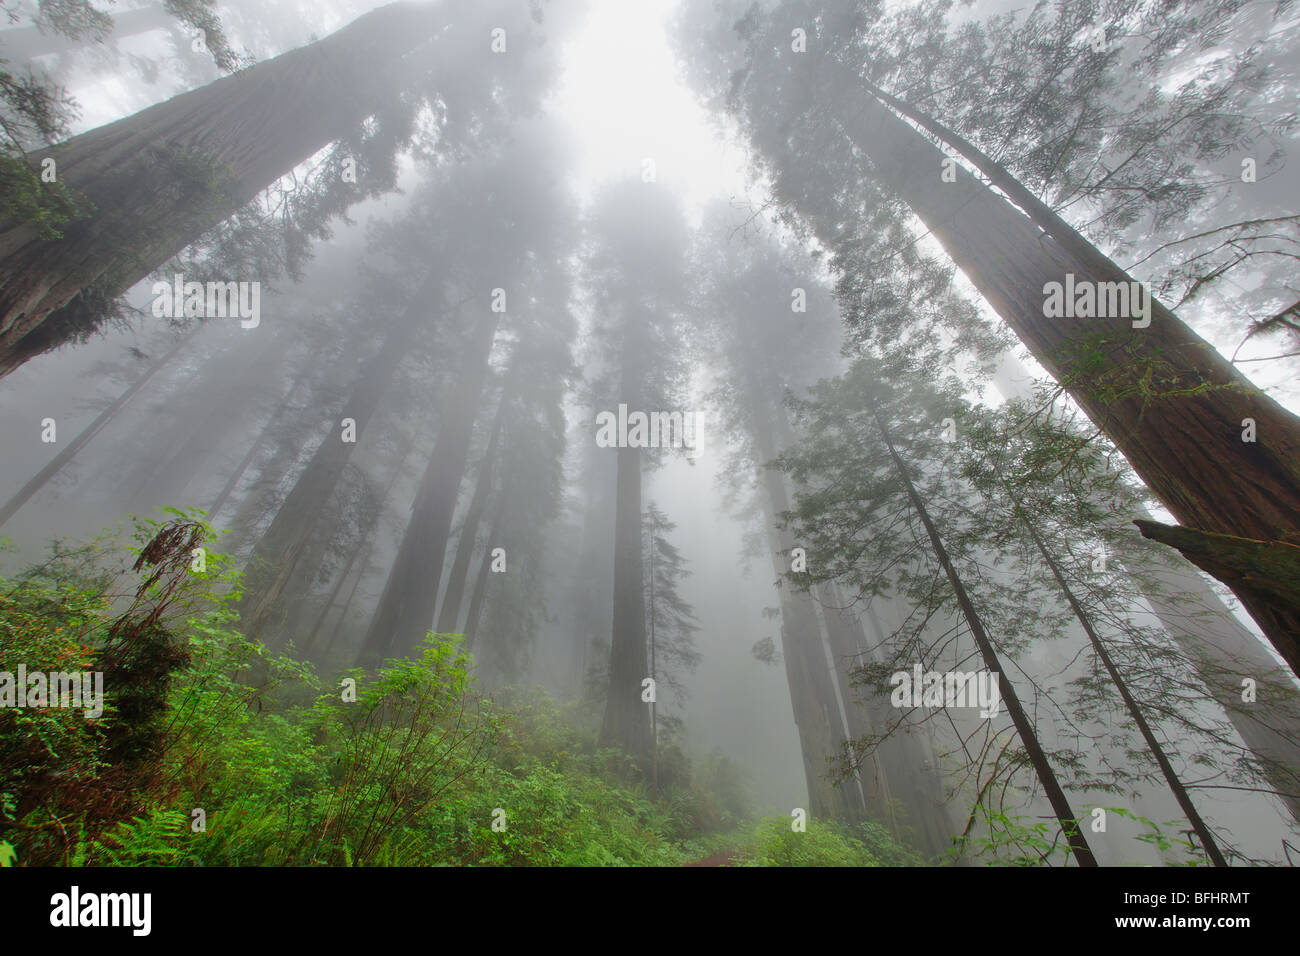 Looking skyward towards the towering Redwood trees along Damnation Creek Trail in Del Norte Coast Redwoods State - Stock Image